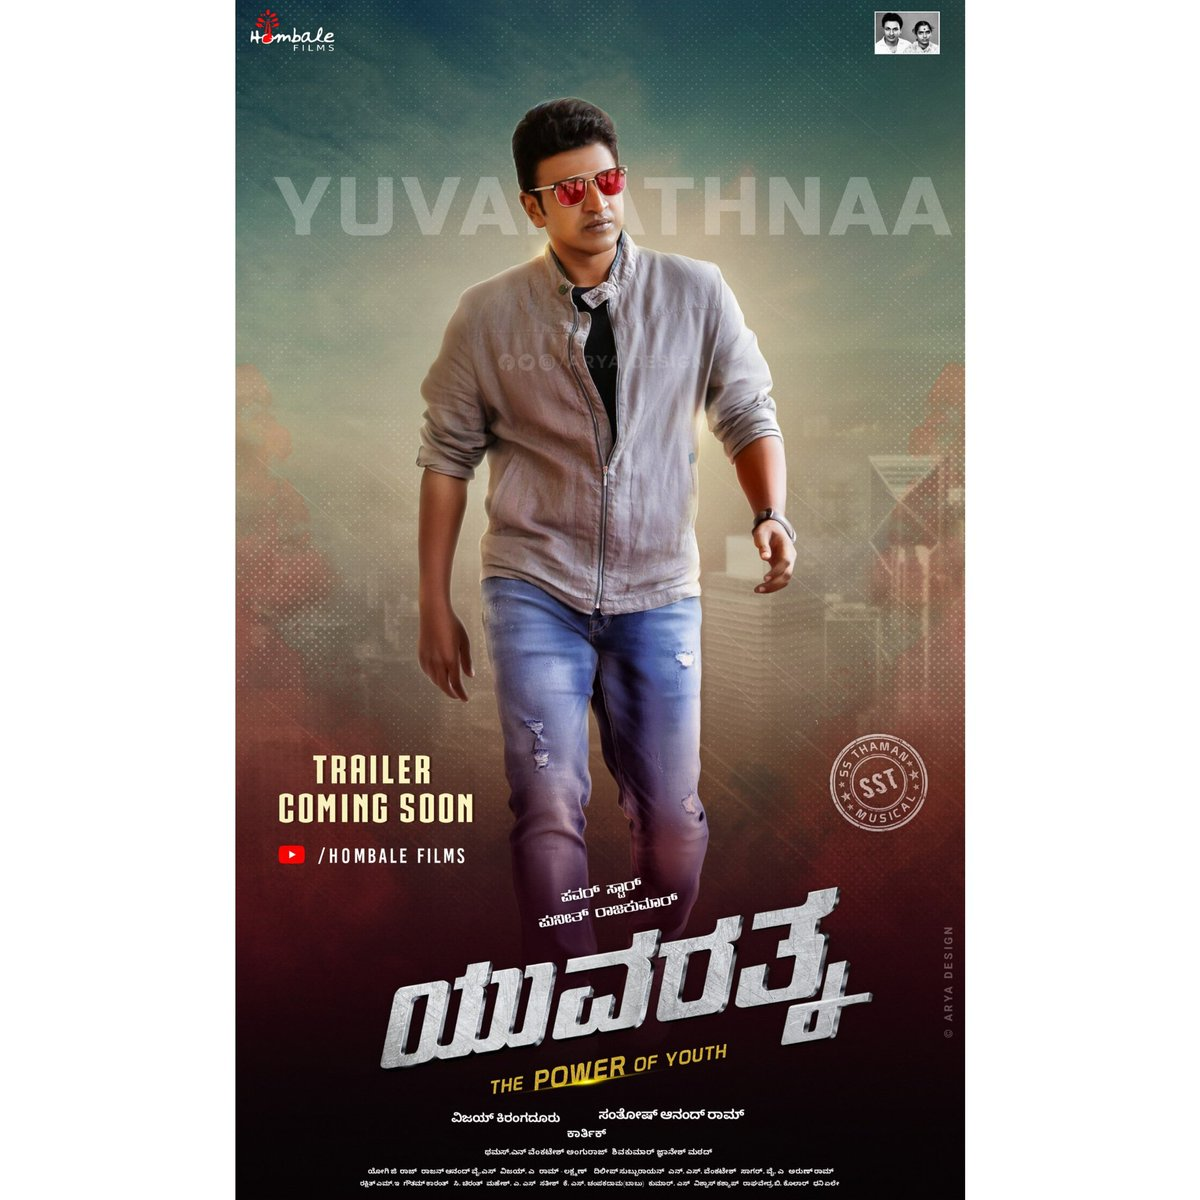 """The Best Fighter is Never Angry"" #yuvarathnaa 💪💪💪Happy week end Folks❤️ @aryadesign2   #PuneethRajkumar 's #Yuvarathnaa Coming soon. @PuneethRajkumar @SanthoshAnand15 @hombalefilms"